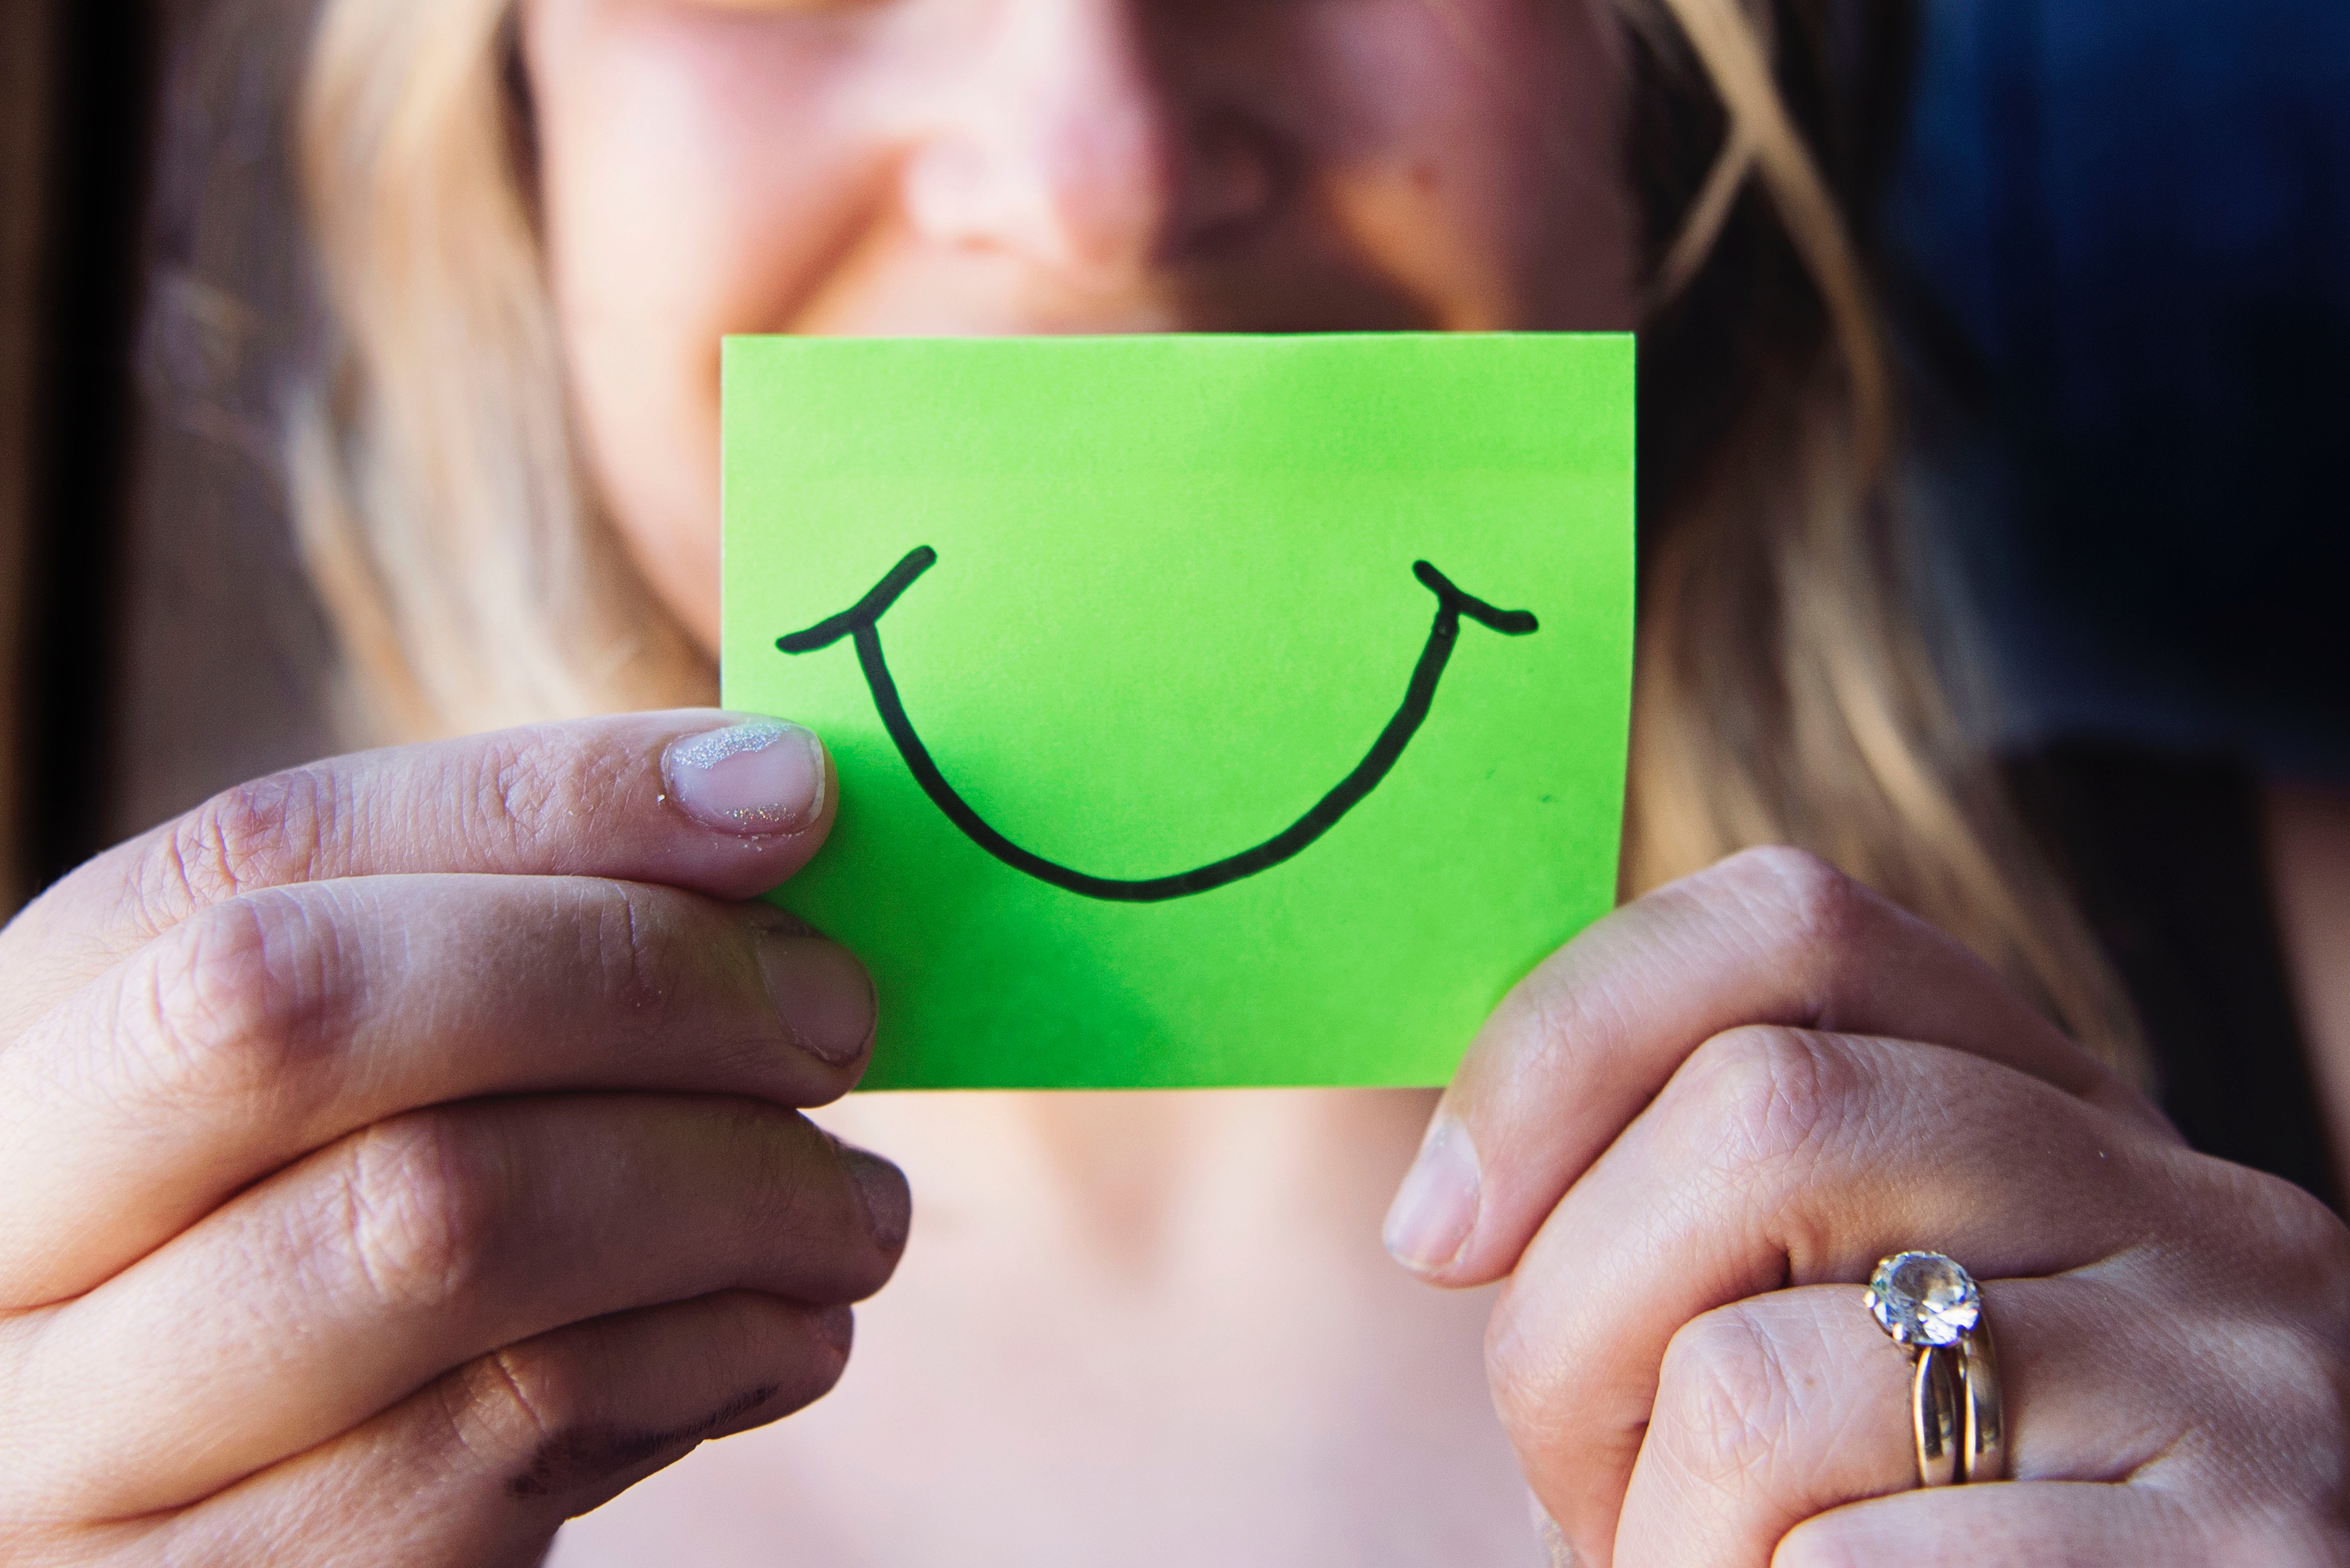 Green energy gives you money for a great smile at the Glasgow orthodontics clinic.